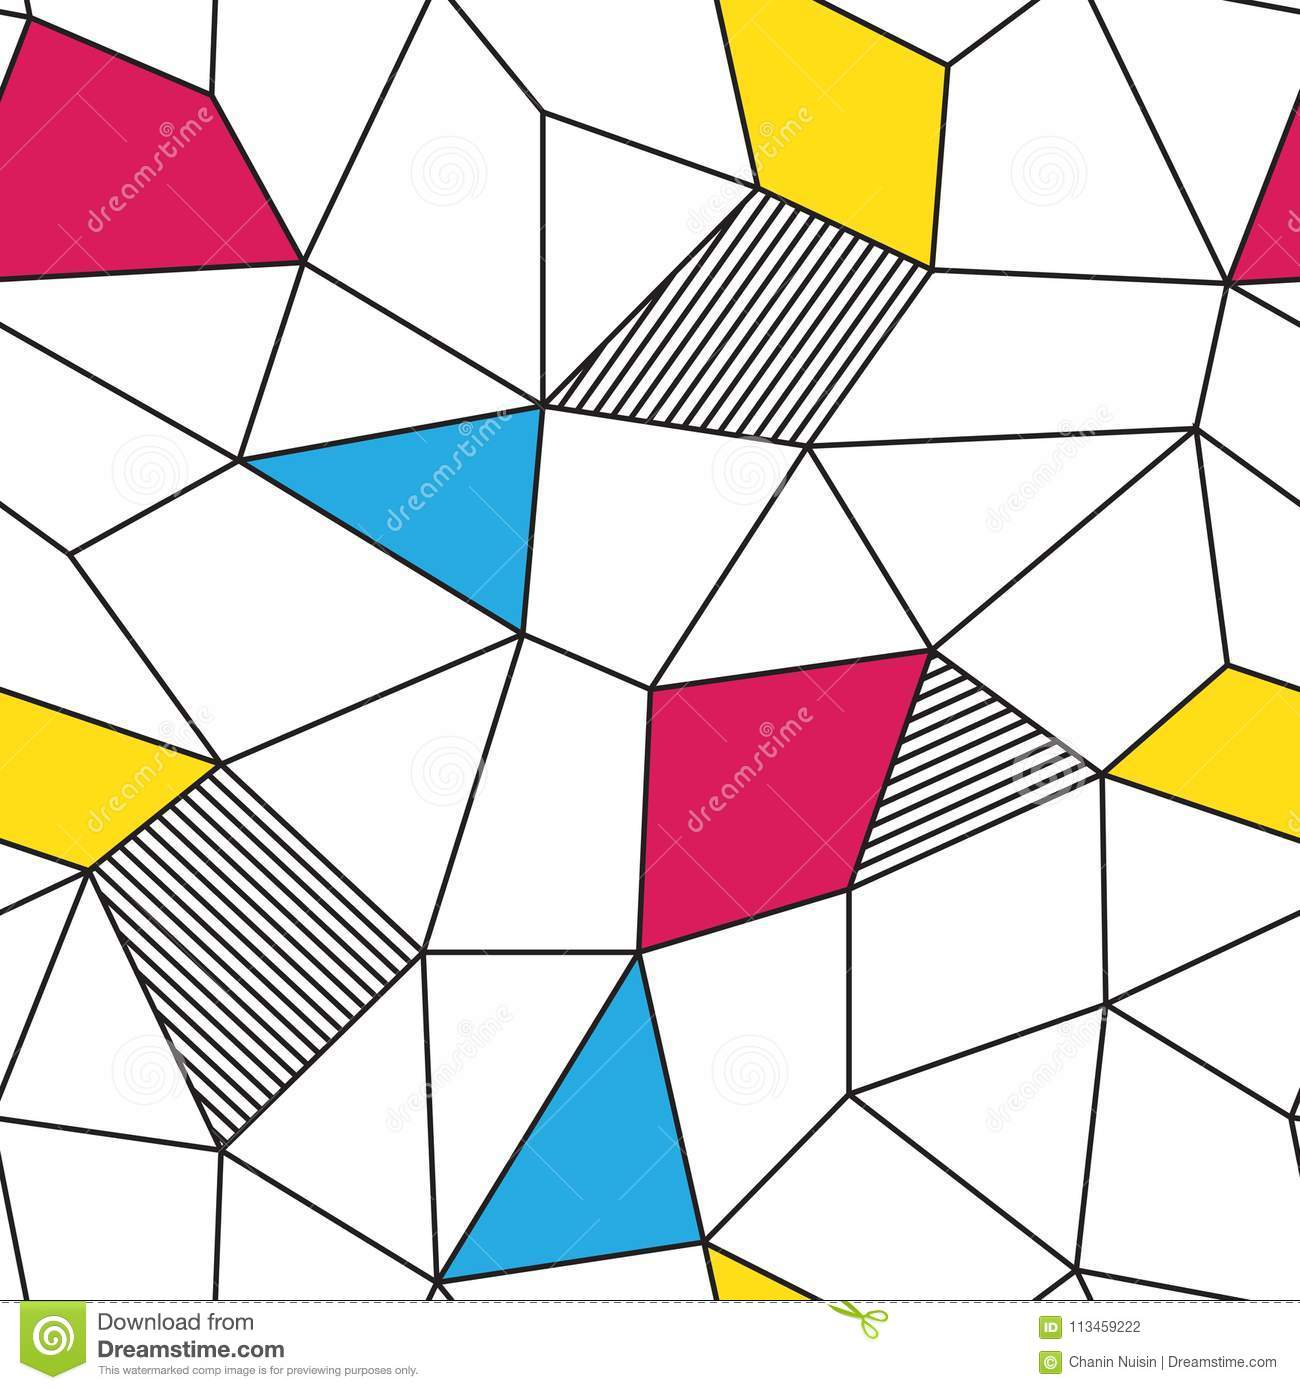 Free Colorful Geometric Wallpaper: Colorful Geometric Triangle Abstract Polygon Seamless